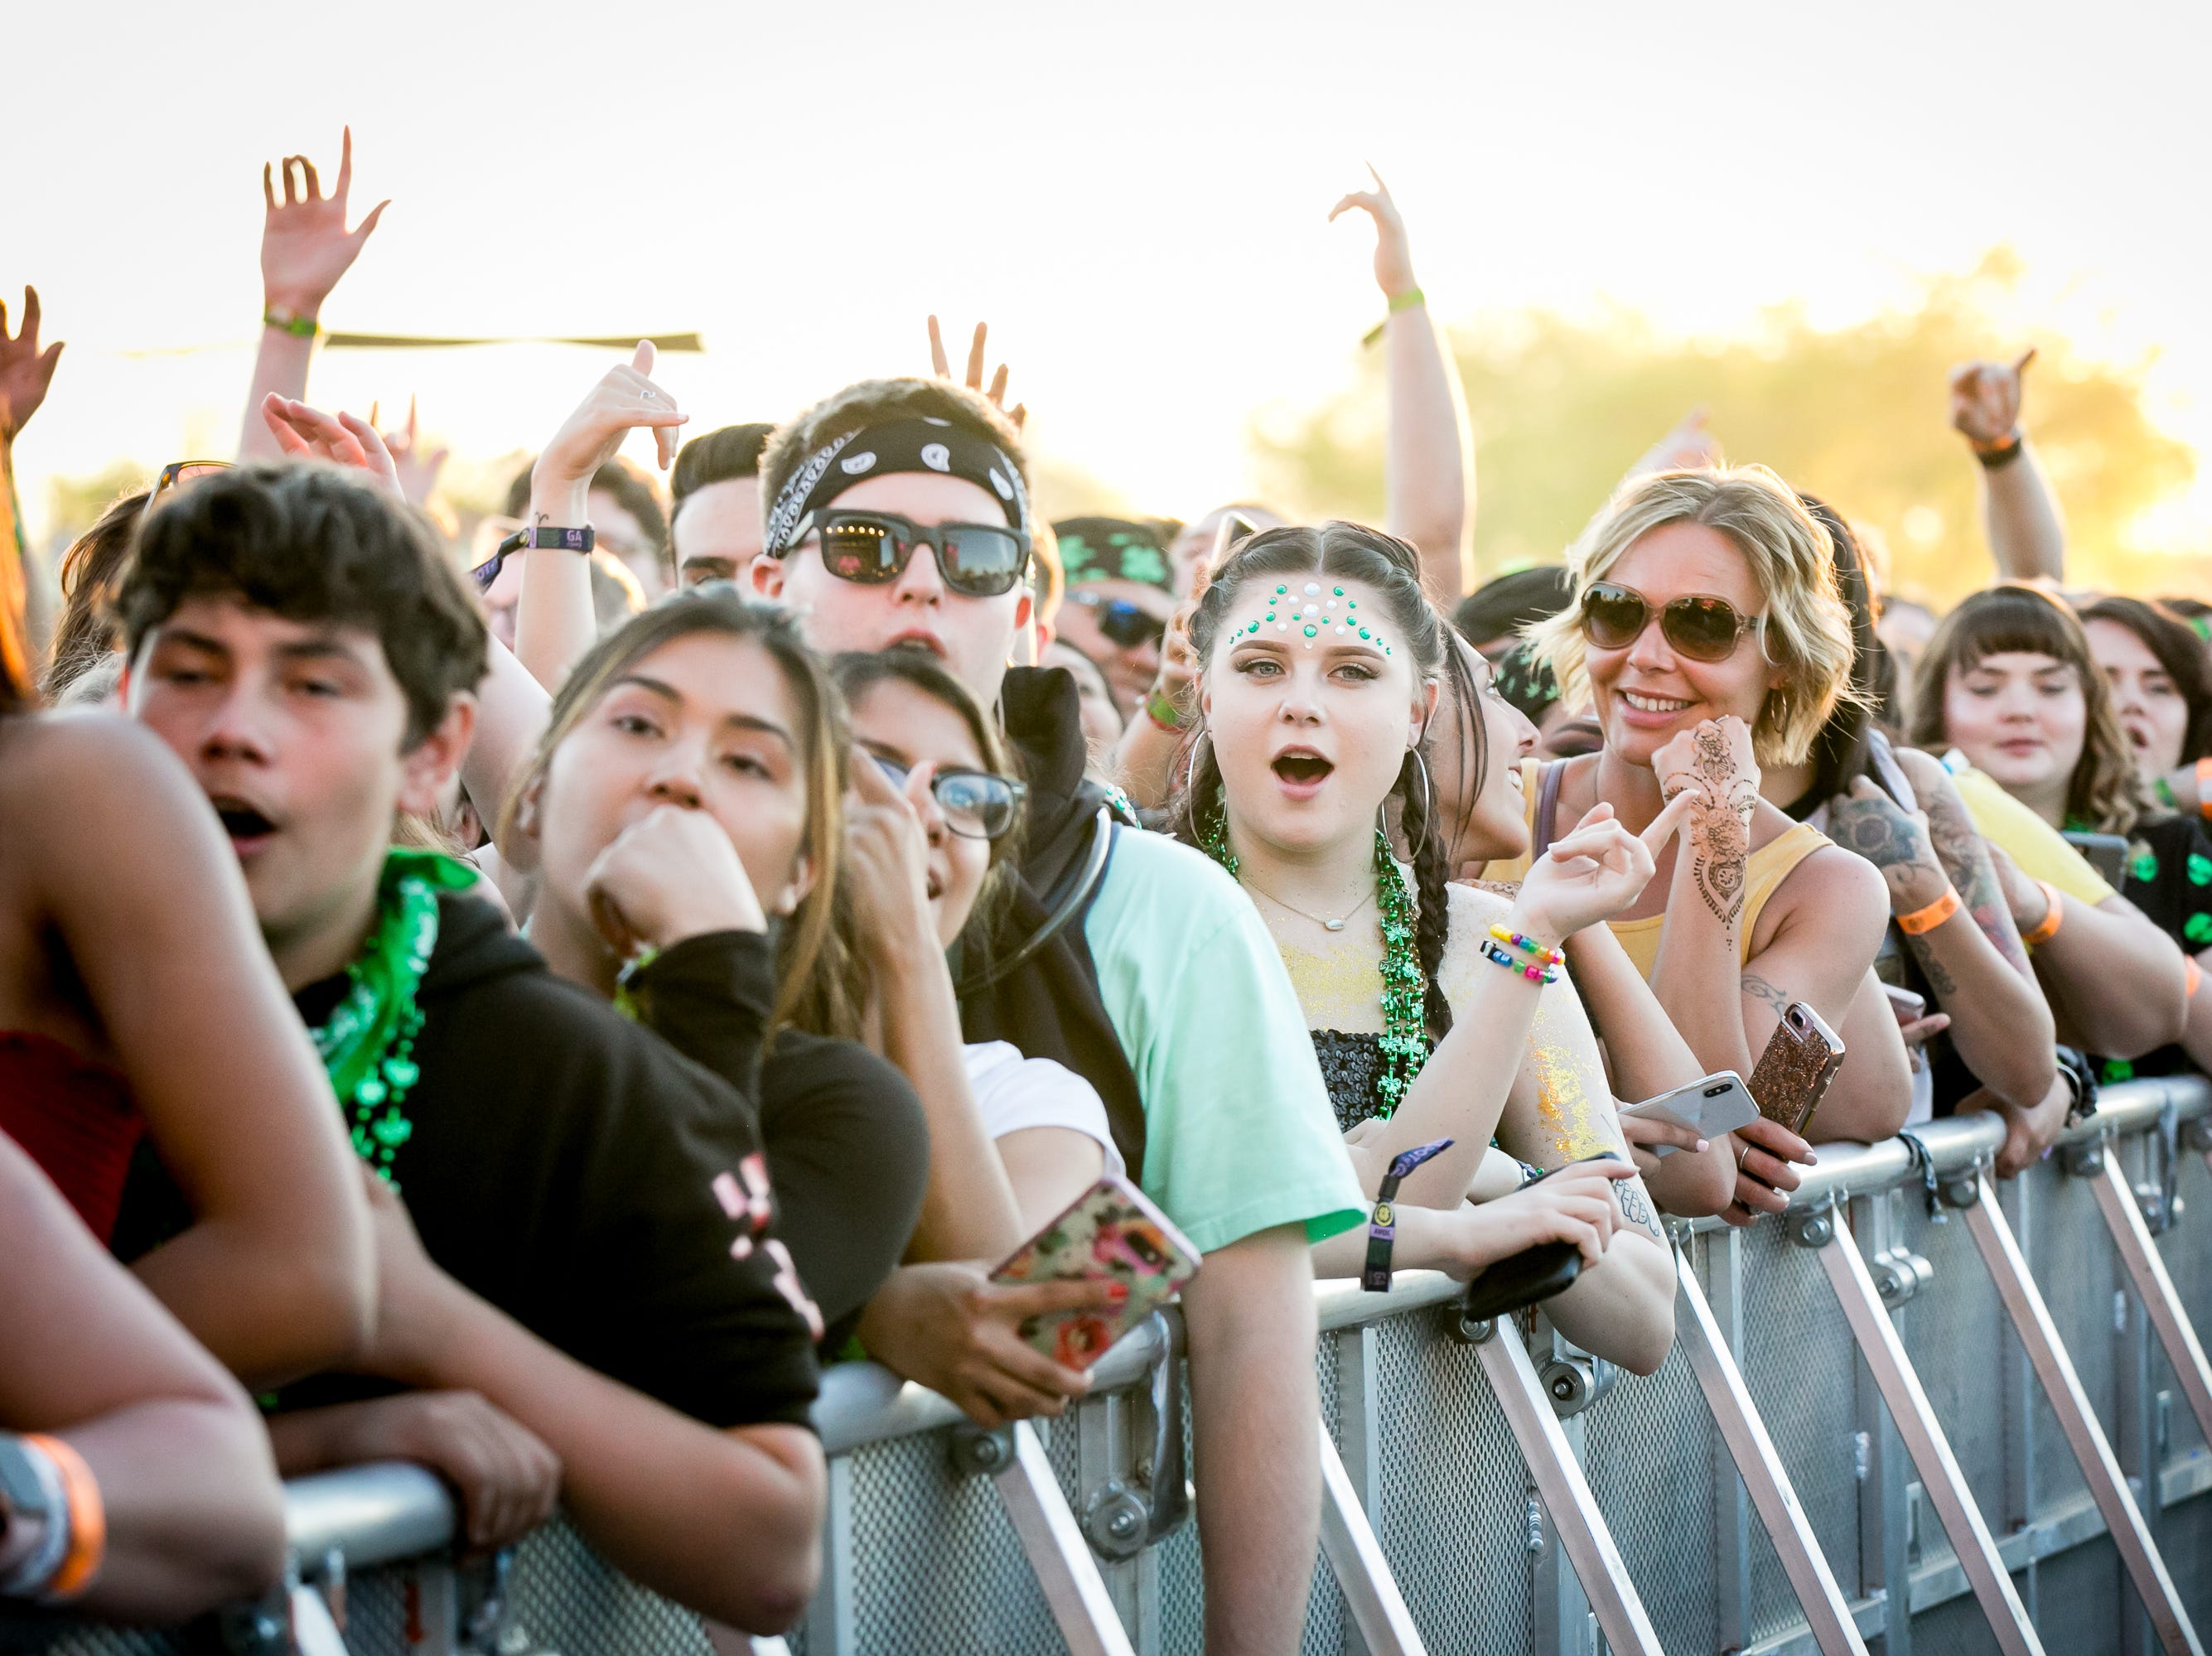 Lil Pump had thousands of adoring fans at Pot of Gold Music Festival on Sunday, March 17, 2019.